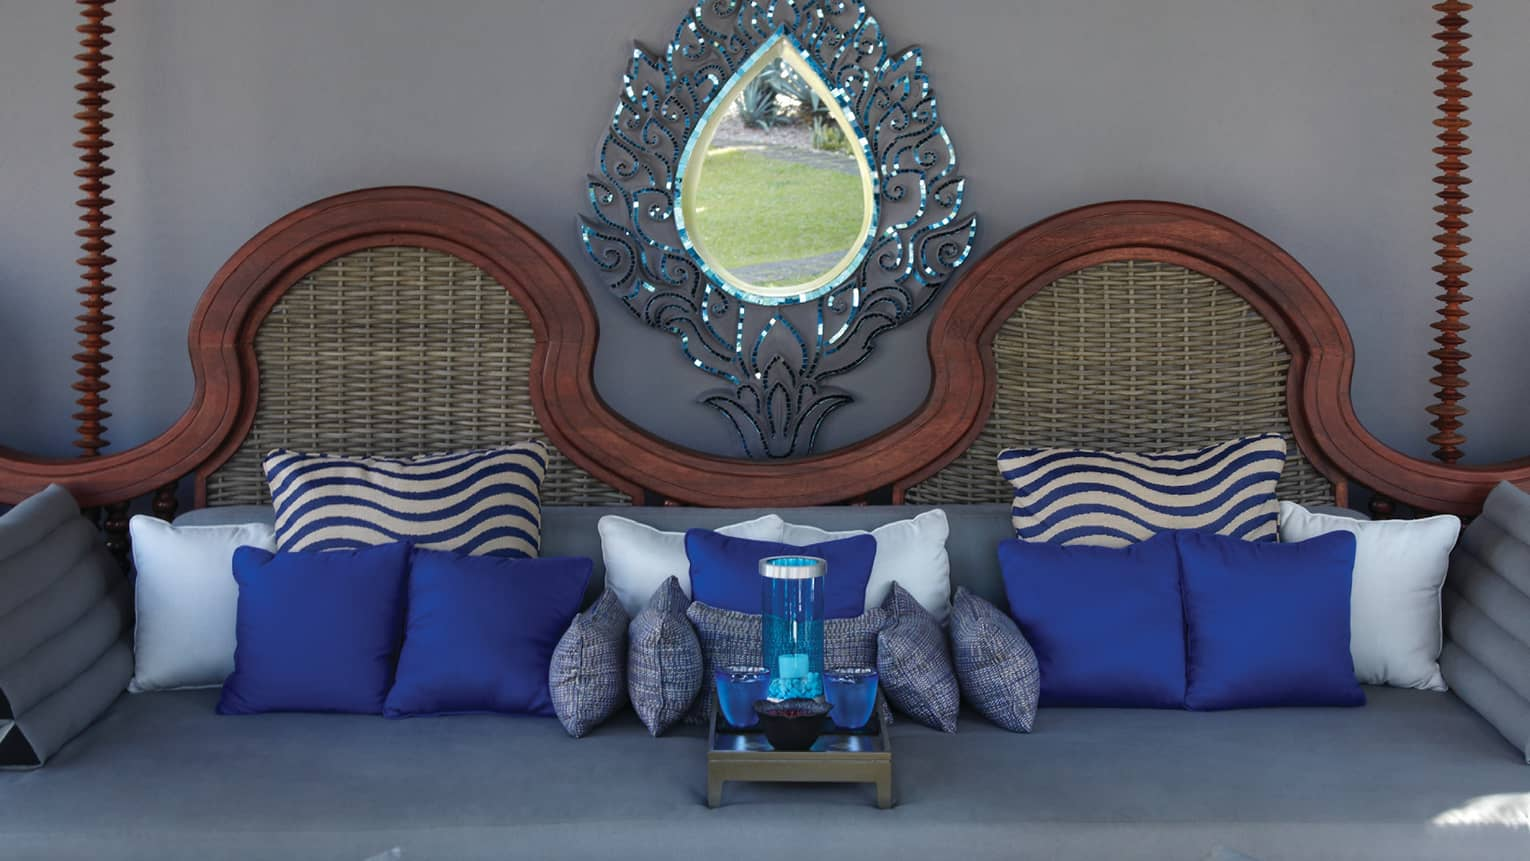 Teardrop-shaped mirror above wicker bench with decorative blue pillows, tray